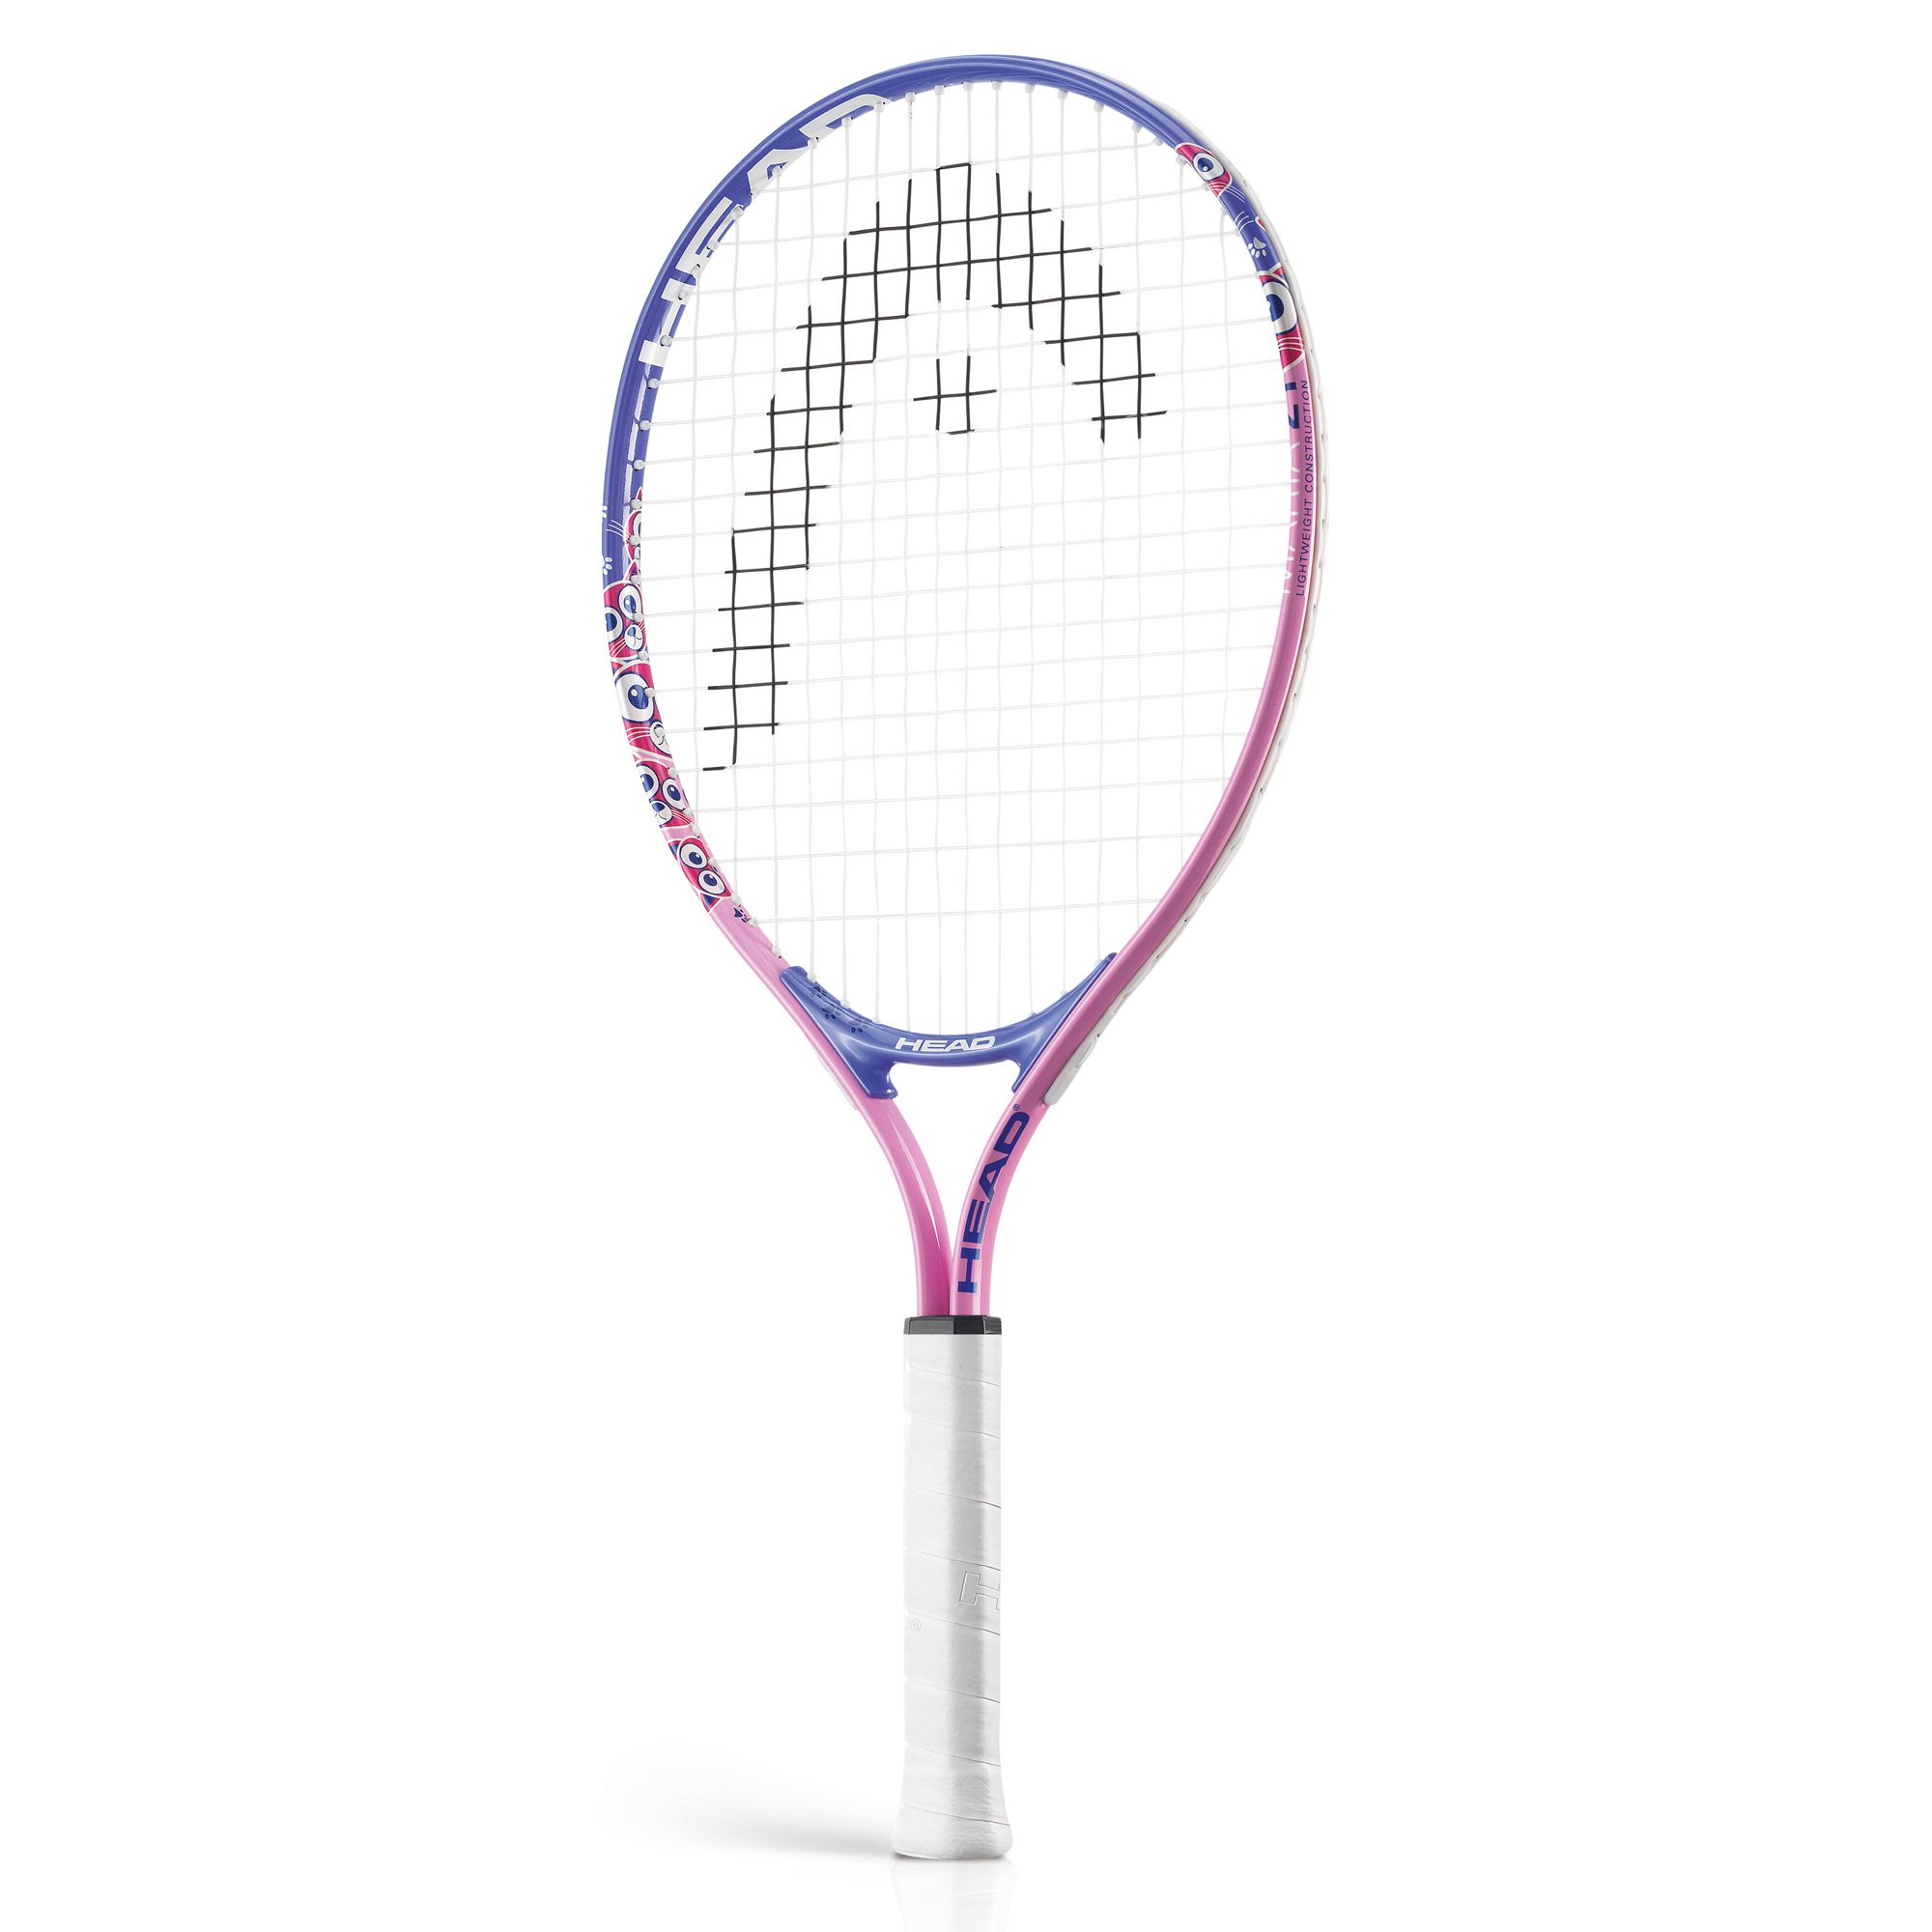 head_maria_23_junior_tennis_racket_ss15_head_maria_23_junior_tennis_racket_ss15_2000x2000